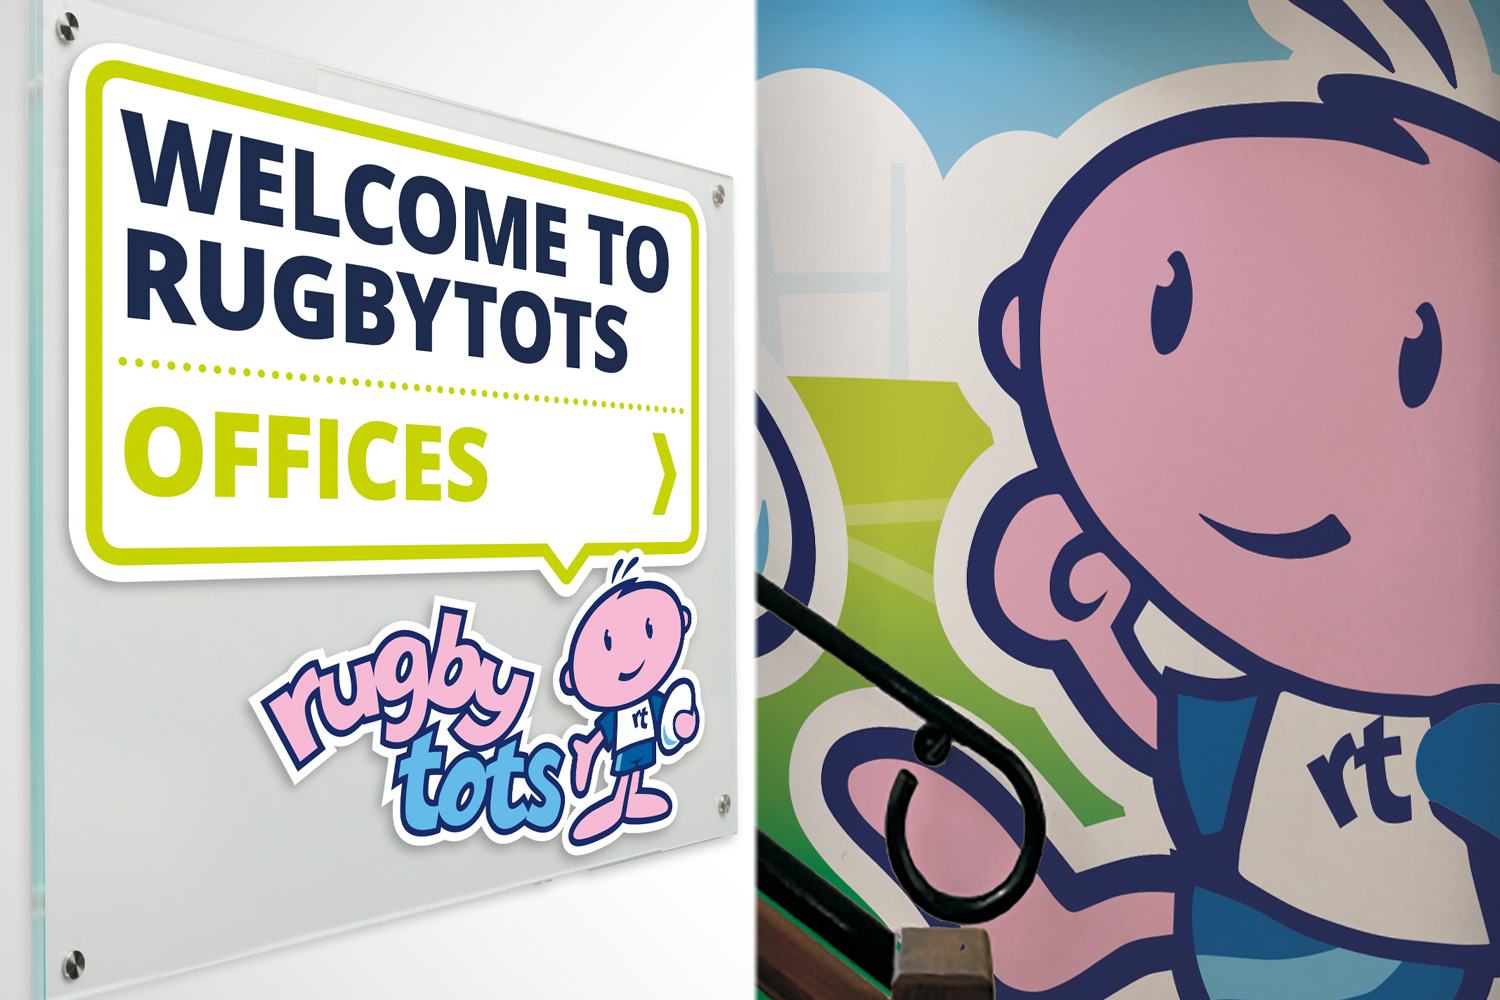 Rugbytots office graphics